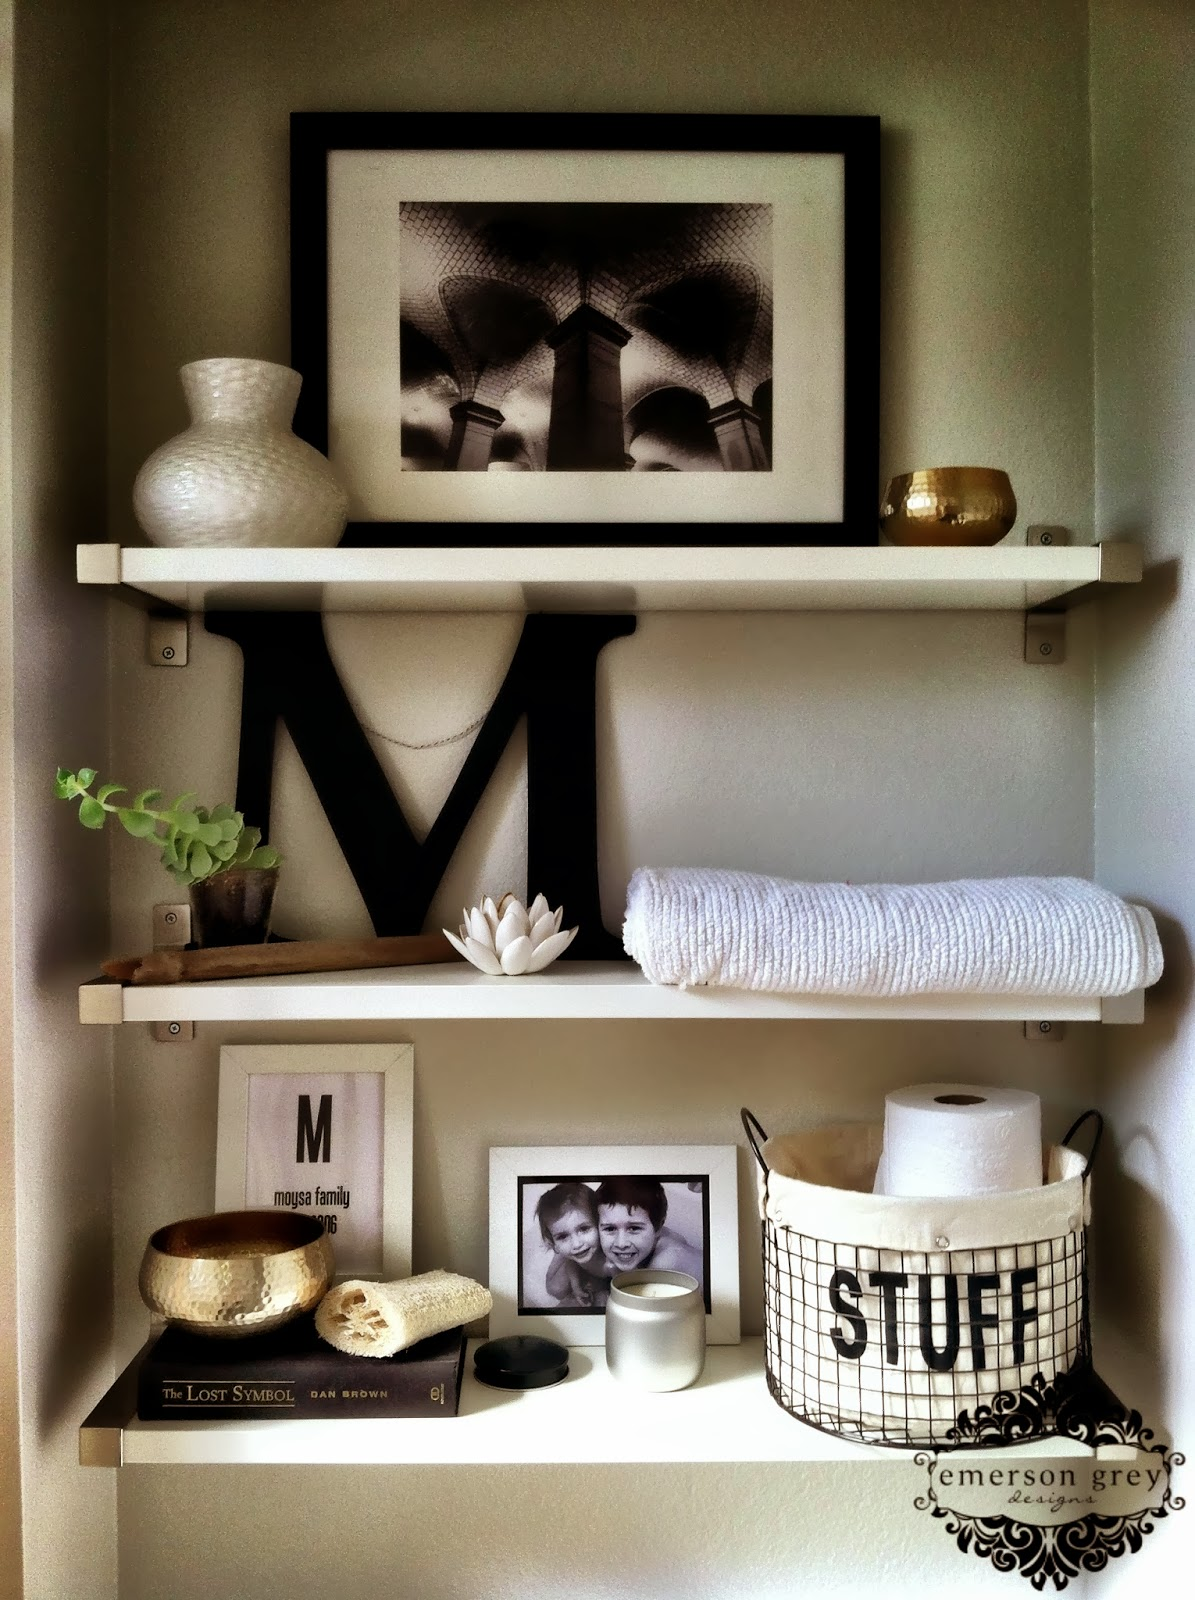 Ideas Bathroom Shelves 20 Cool Bathroom Decor Ideas That You Are Going To Love